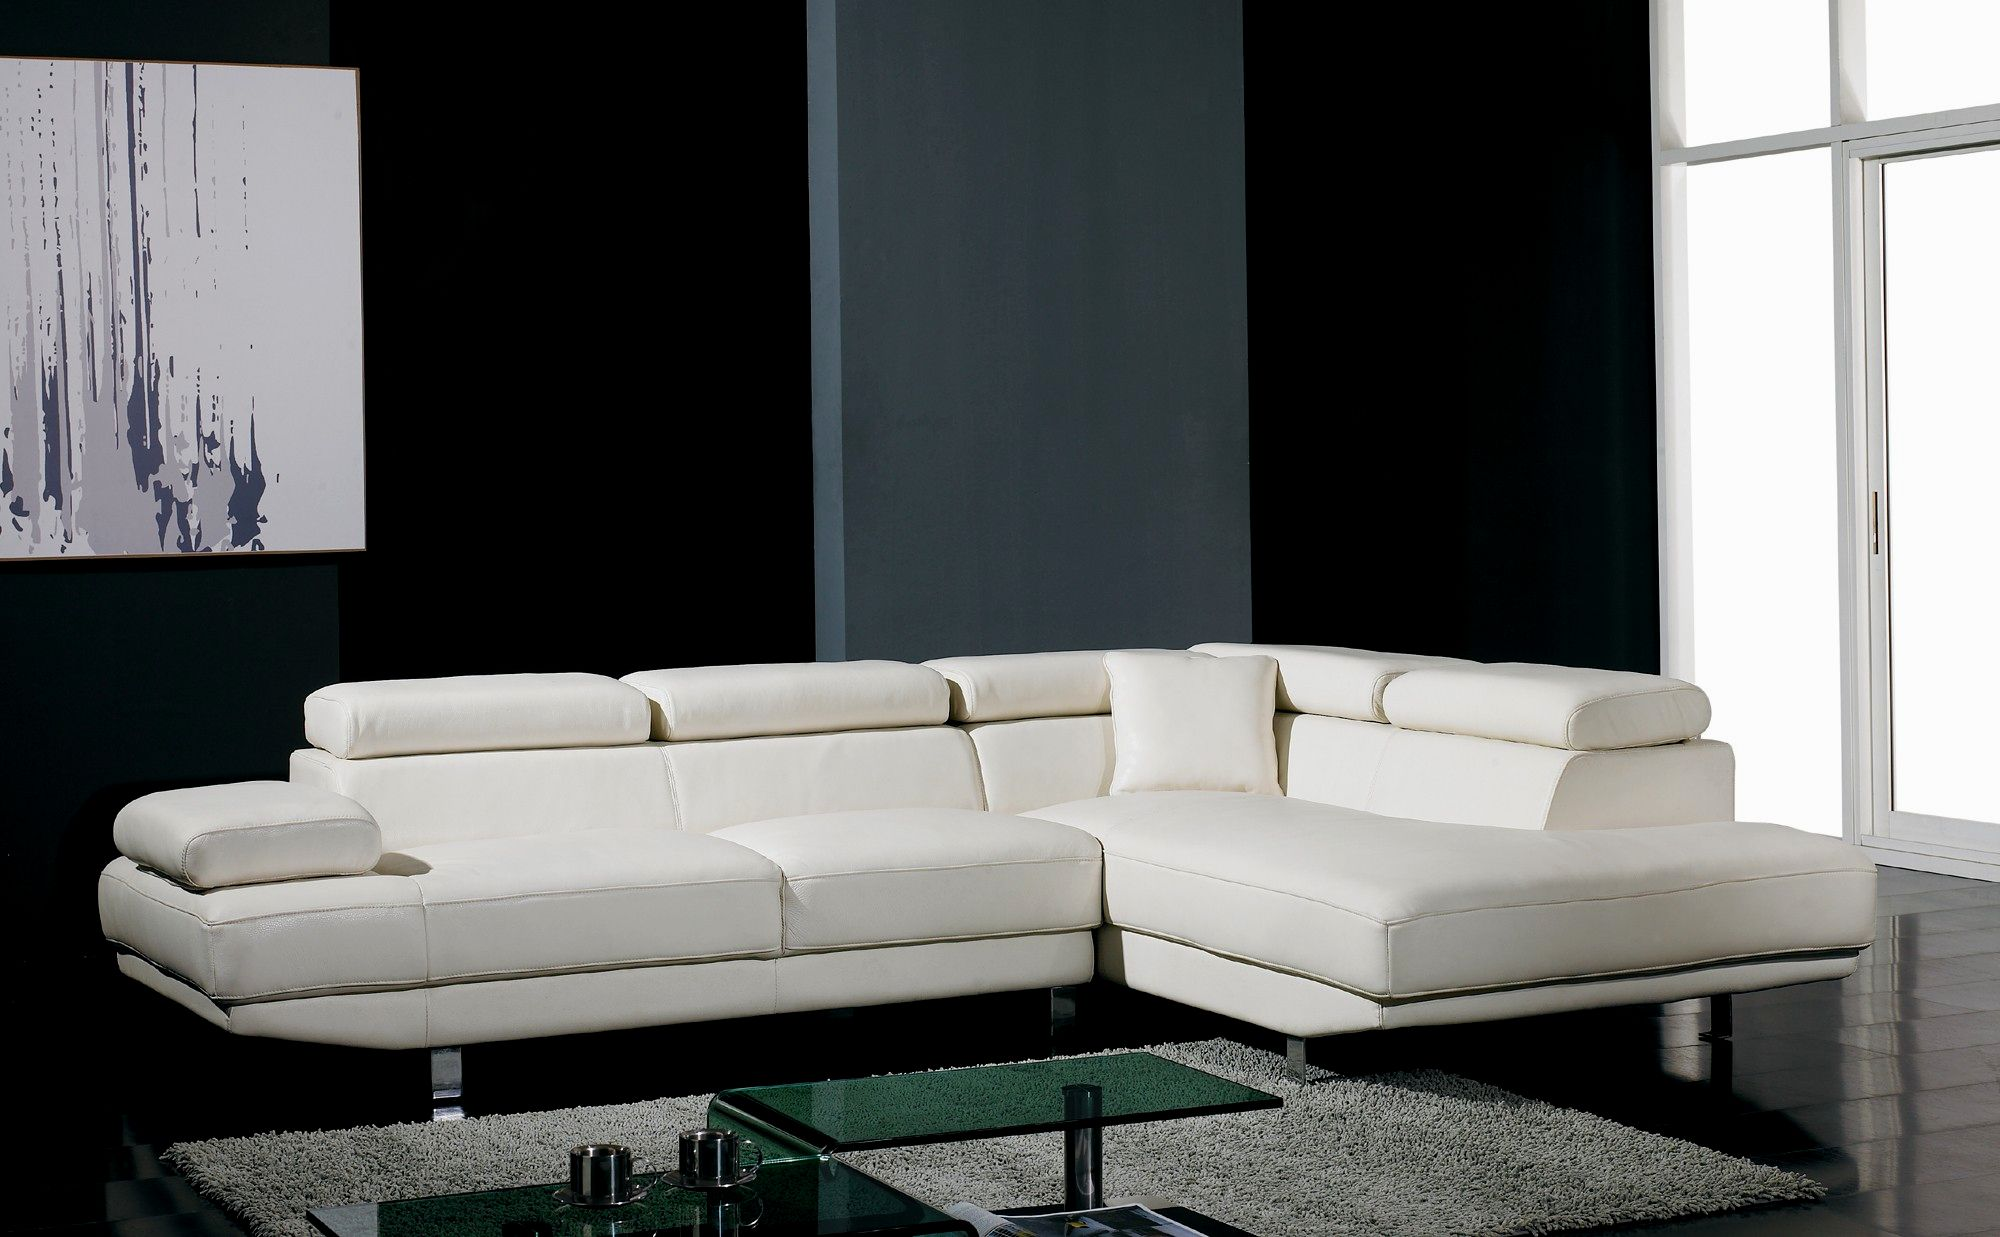 contemporary modular sectional sofa collection-Stunning Modular Sectional sofa Décor